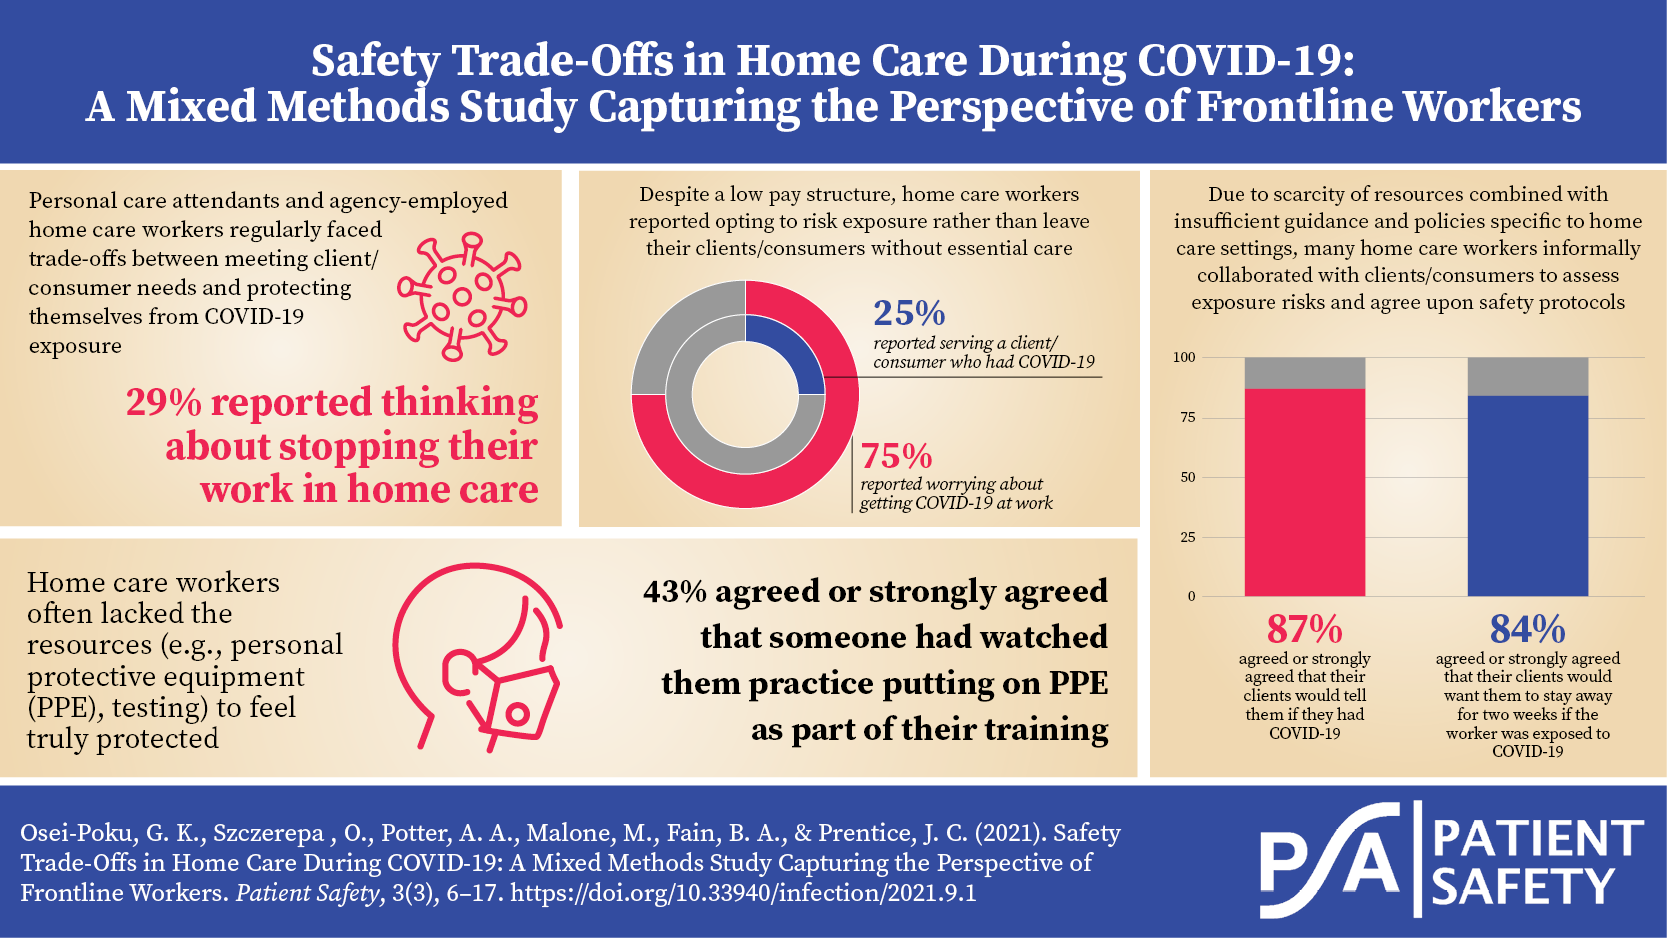 Home care visual abstract